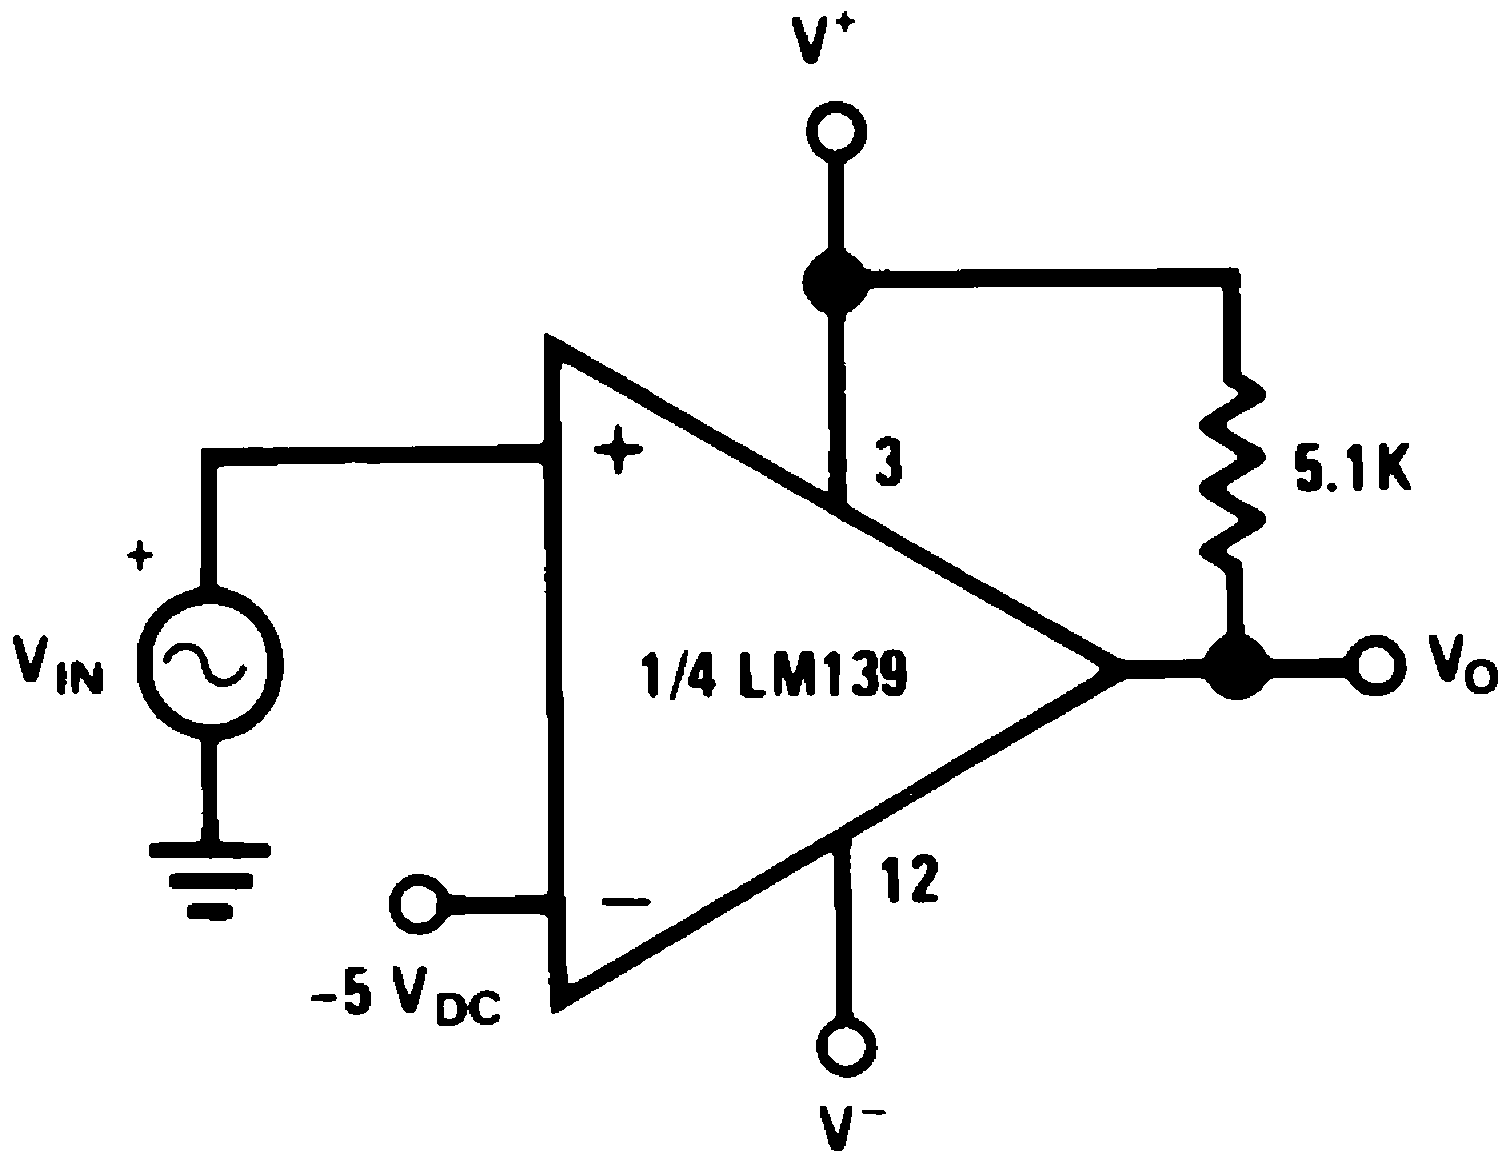 Lm239 N The Circuit Schematic For Lm339 Quad Voltage Comparator With A Negative Reference V 15 Vdc And